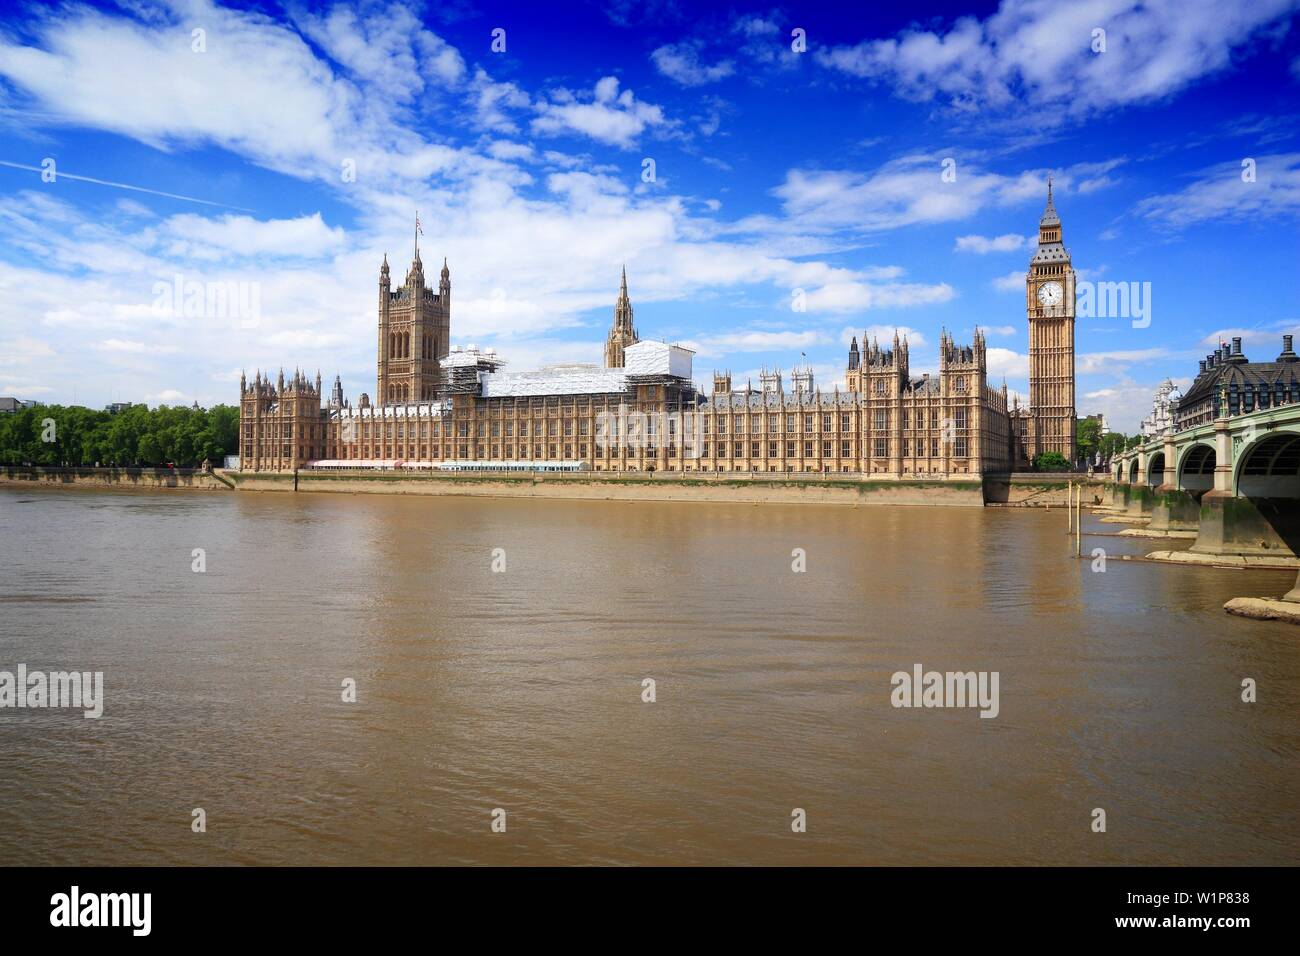 Houses of Parliament and Westminster Bridge in London, UK. - Stock Image